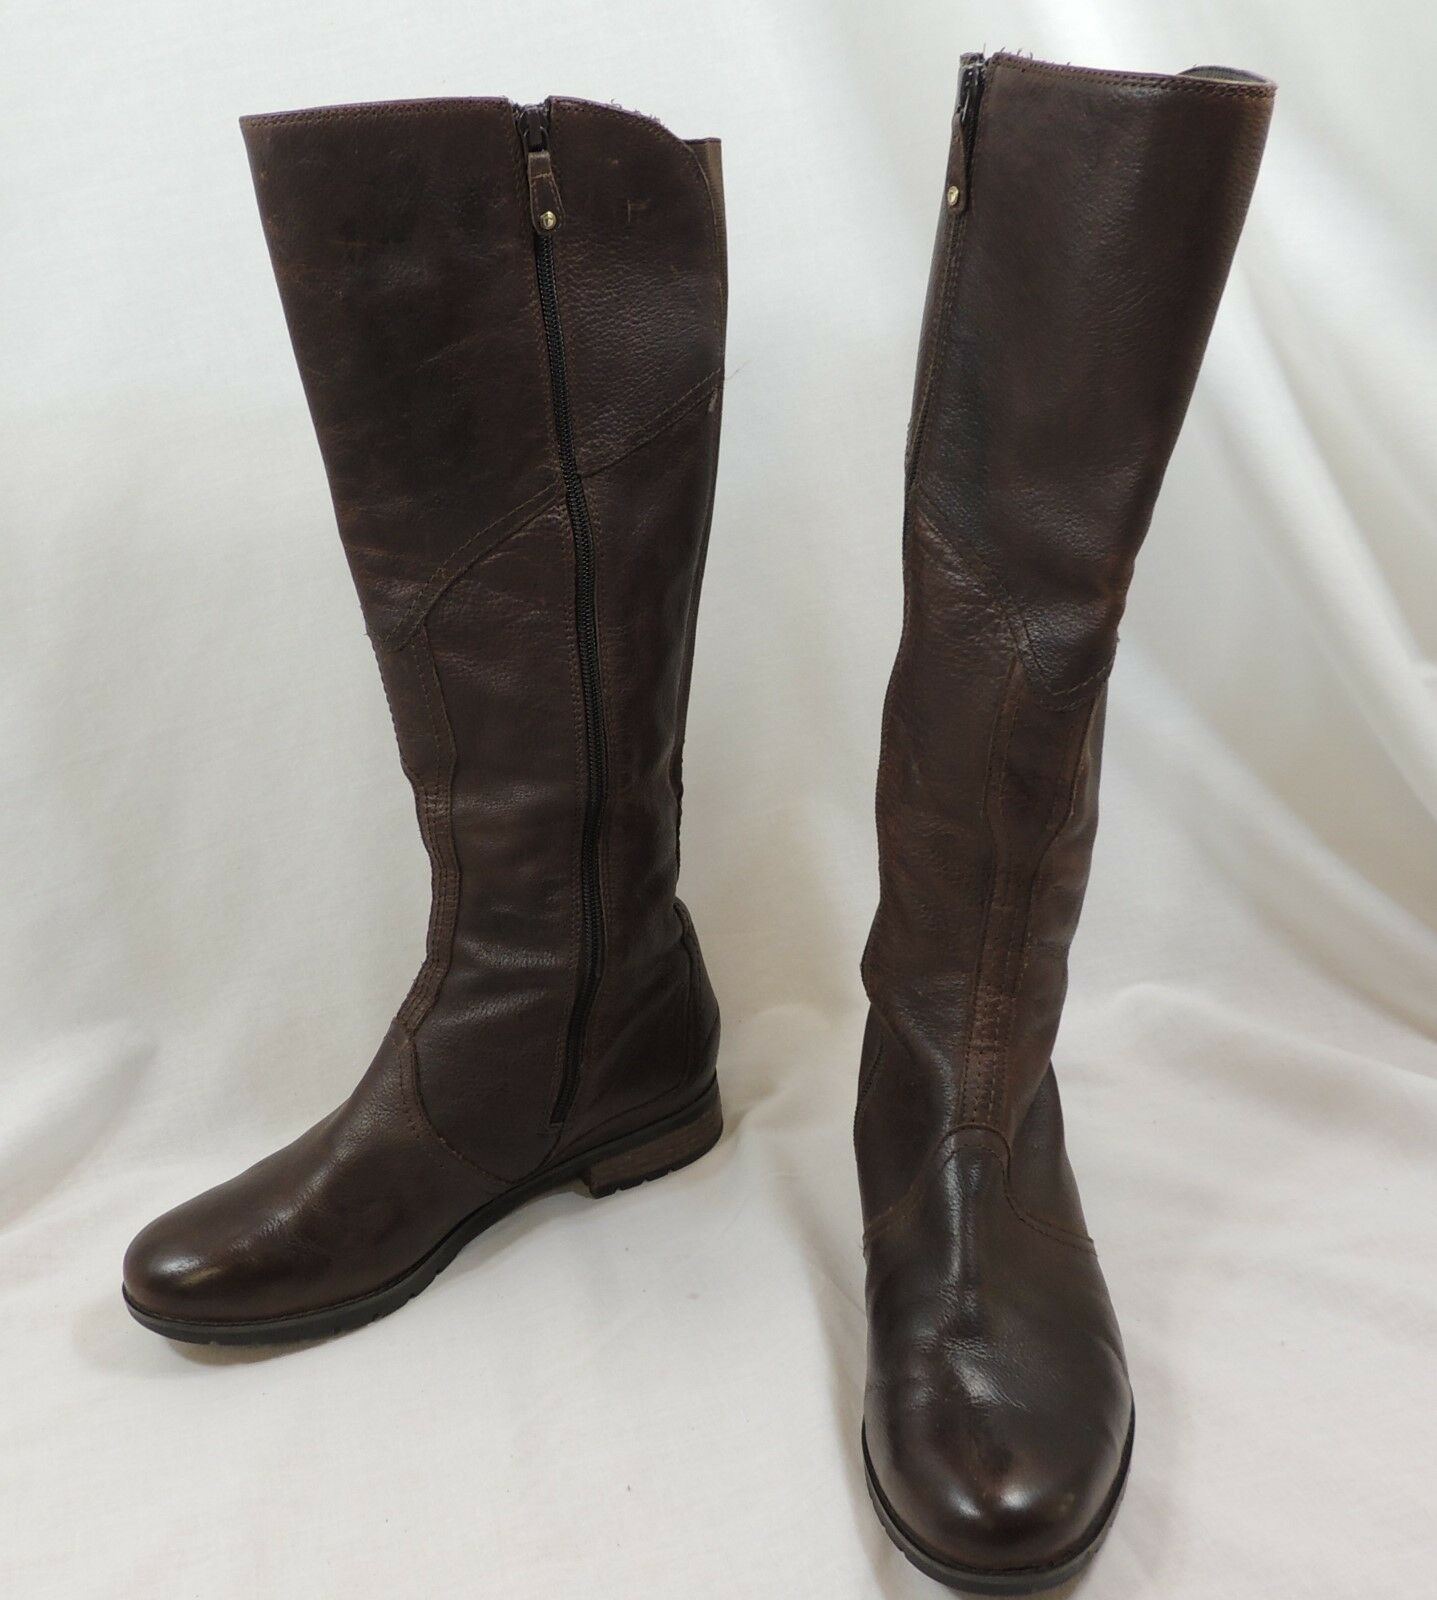 Rockport femmes marron Riding bottes 9 1 2 Leather Hydro Shield Tall